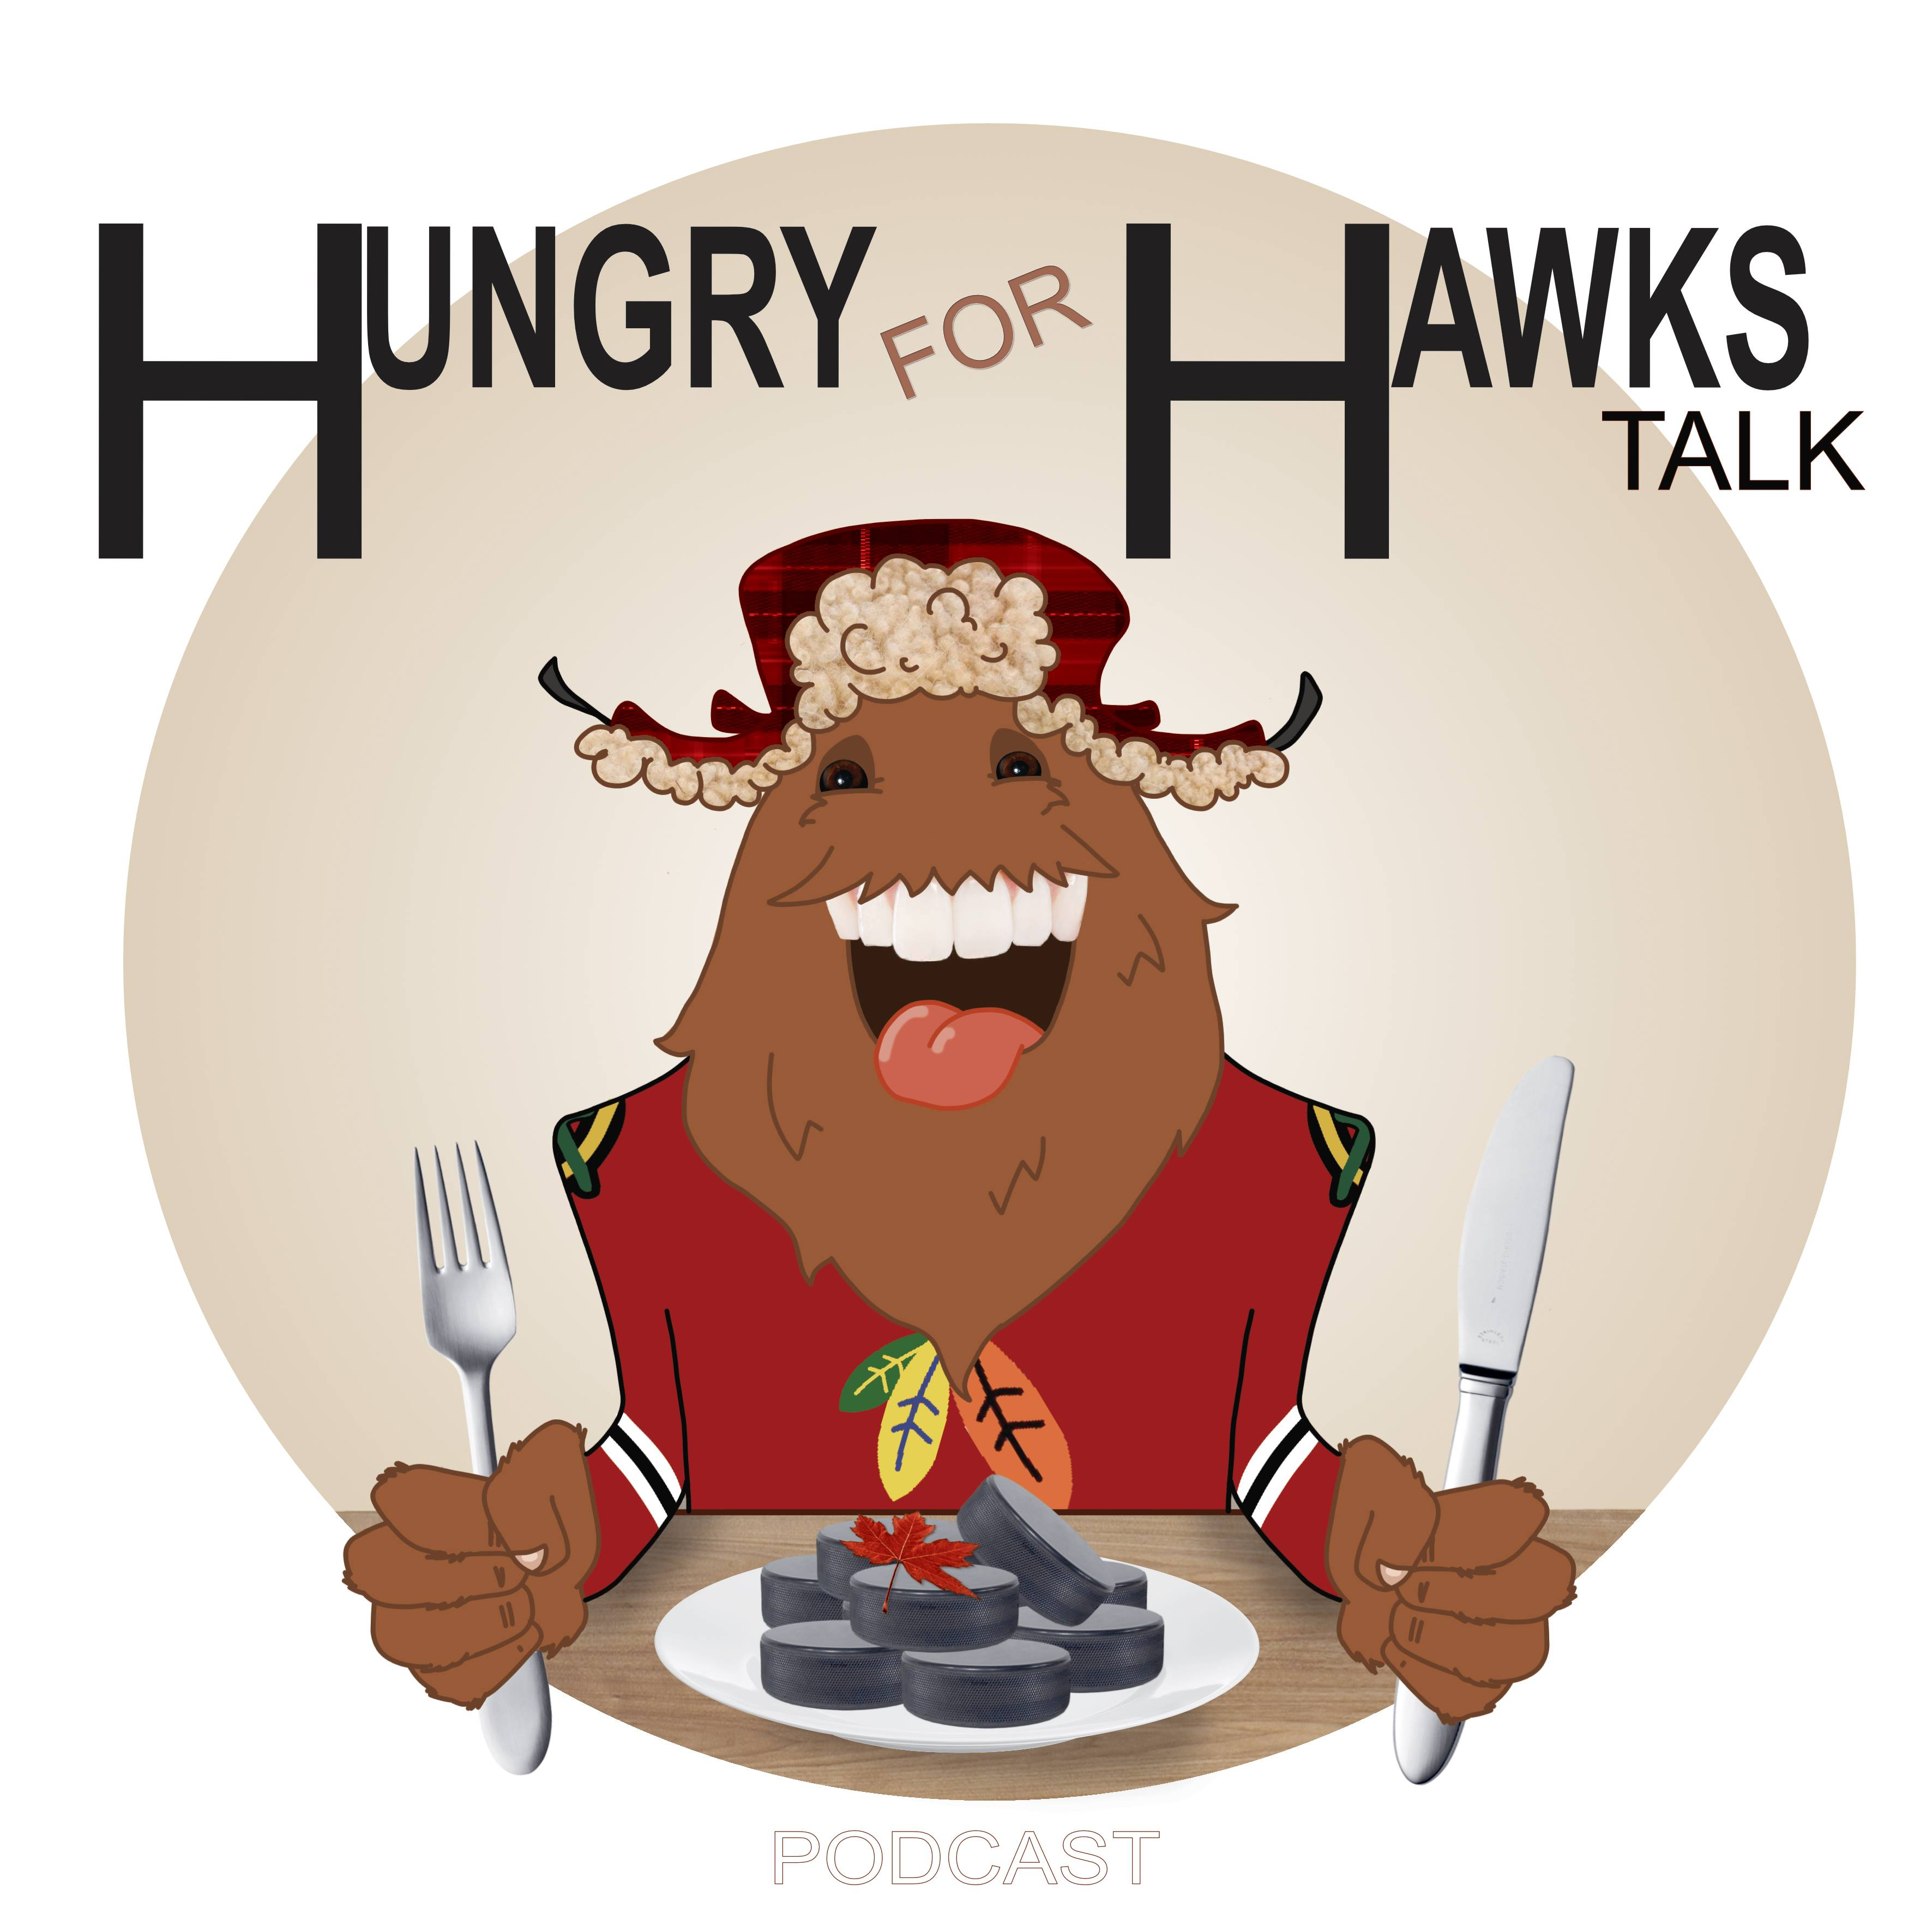 Chicago Blackhawks - Hungry For Hawks Talk - EP53 - S1 Featuring  Offside By A Mile